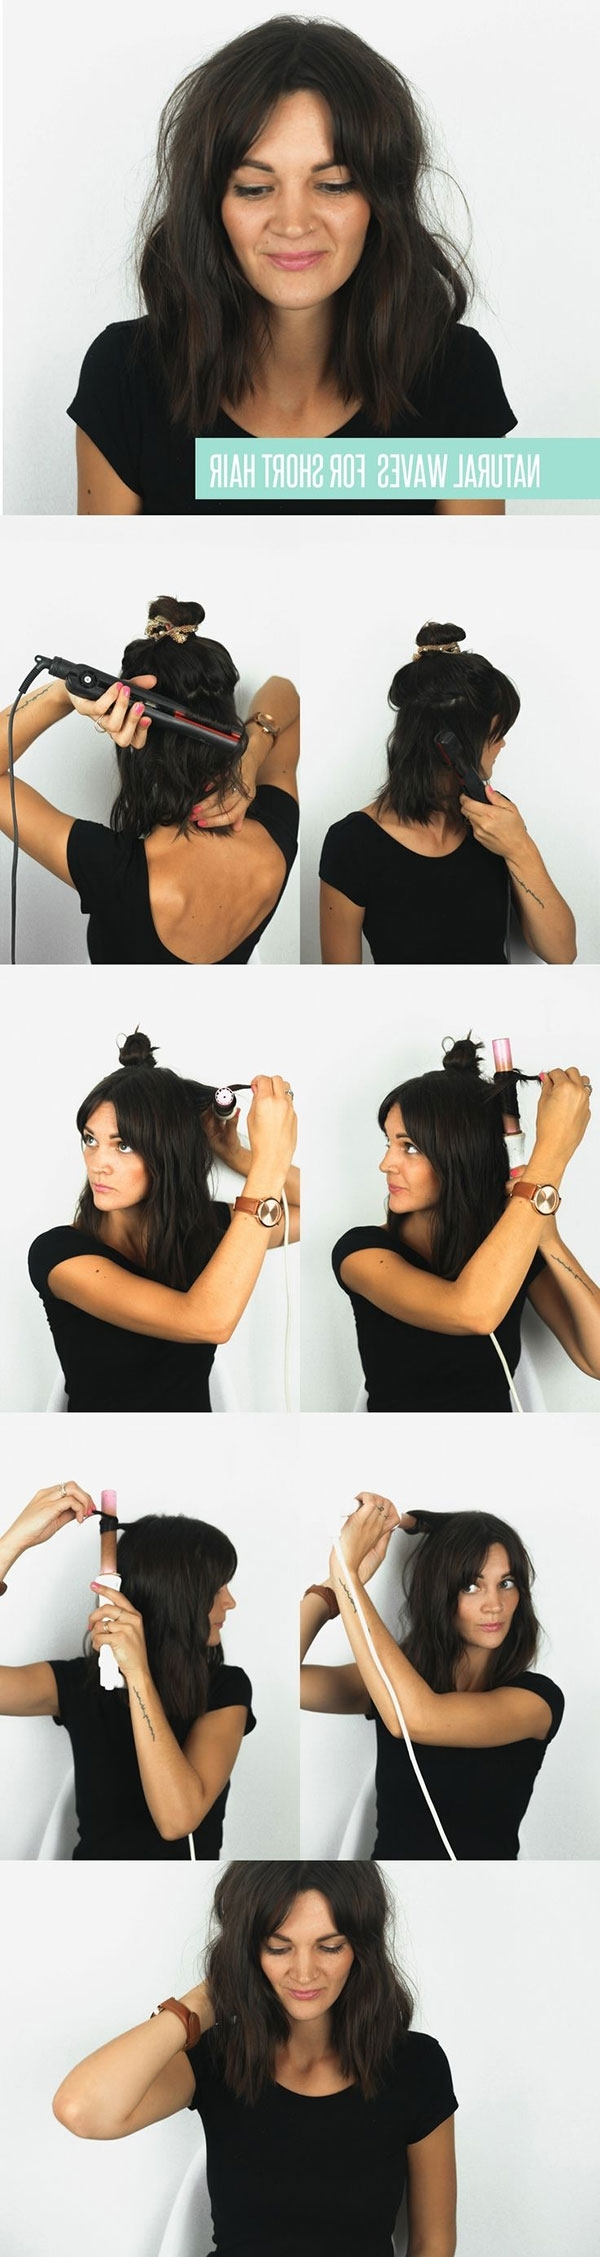 15 Cute And Easy Hairstyle Tutorials For Medium Length Hair – Gurl With Regard To Favorite Quick Braided Hairstyles For Medium Length Hair (View 3 of 15)